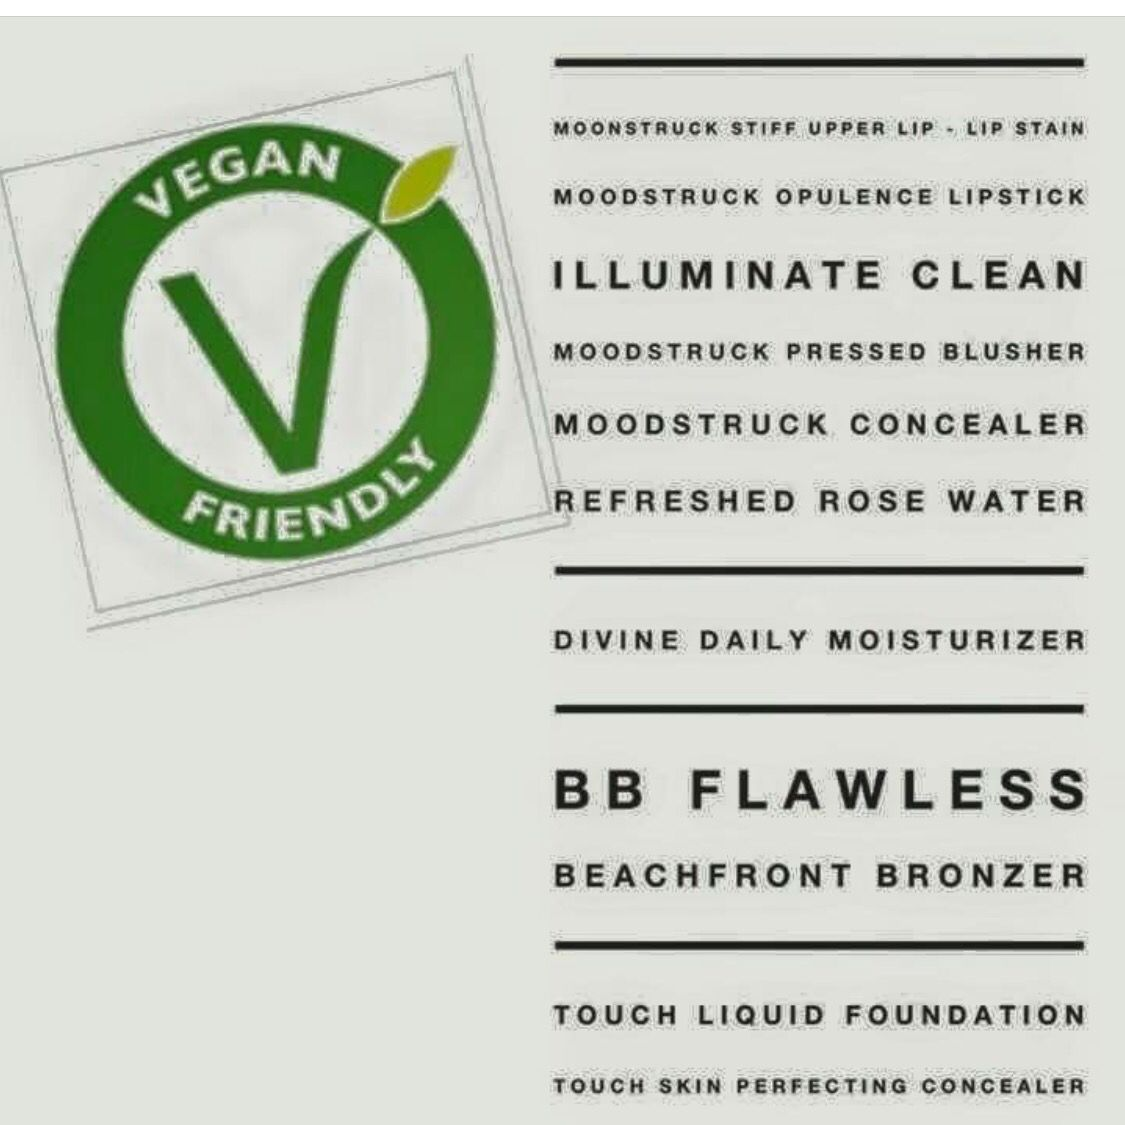 List of vegan friendly makeup products Younique has to offer    http://www.youniqueproducts.com/AshleeHicks2/party/3559615/view